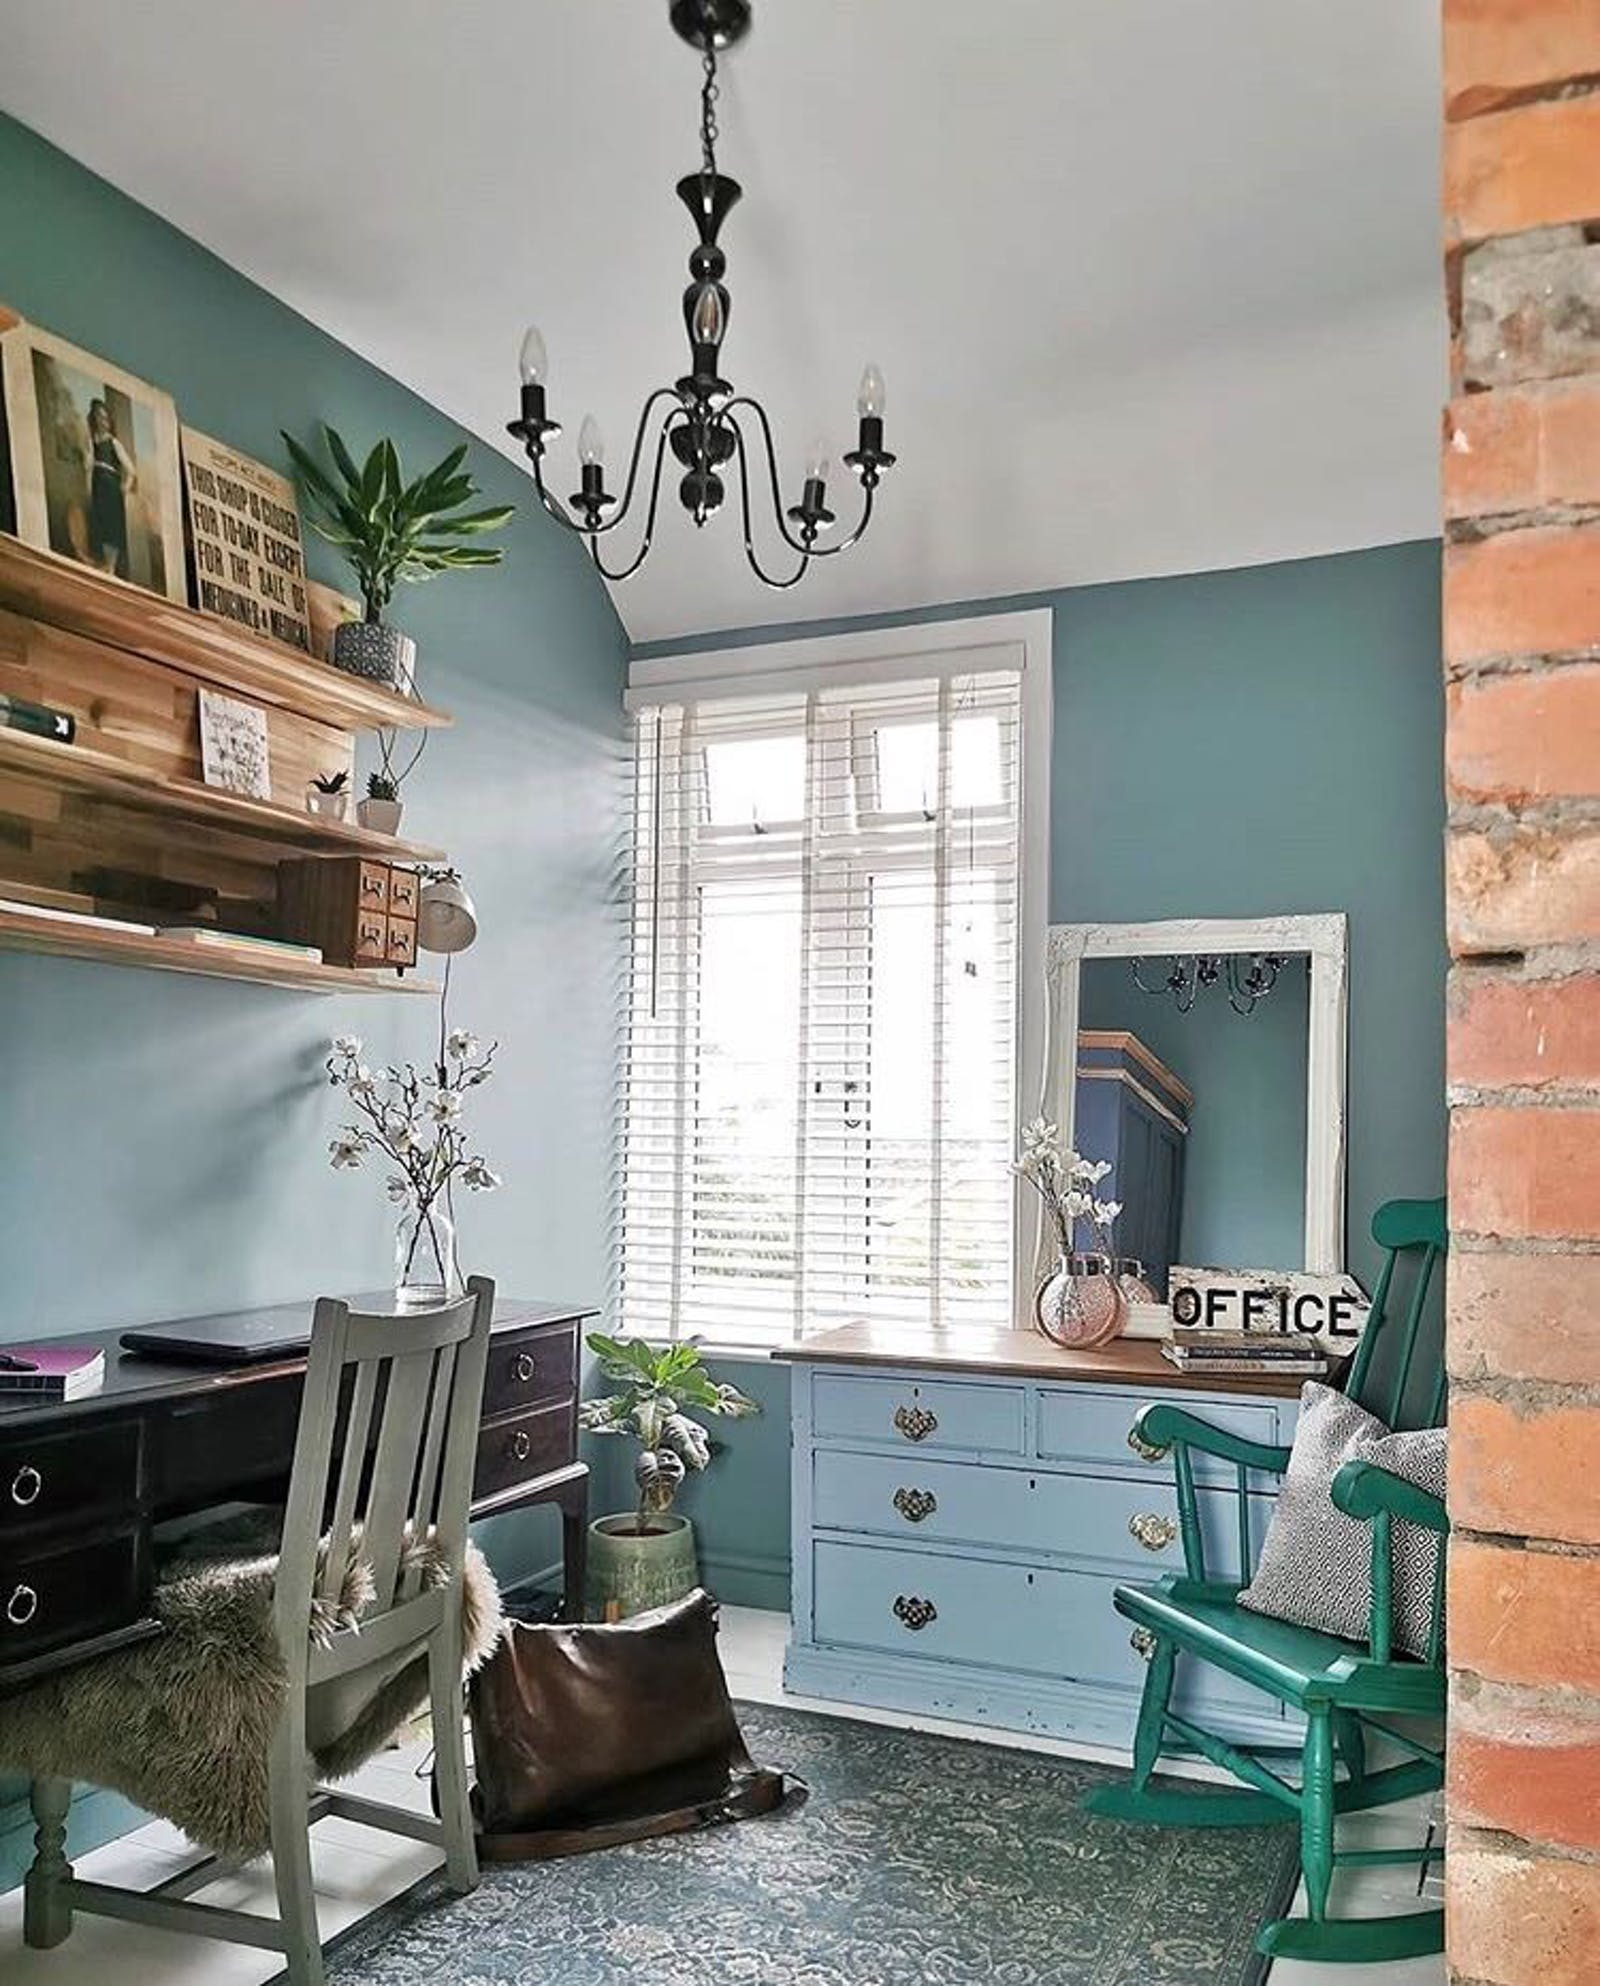 A freshly decorated study in Lick Teal 01 with vintage furniture and natural light coming in from the window